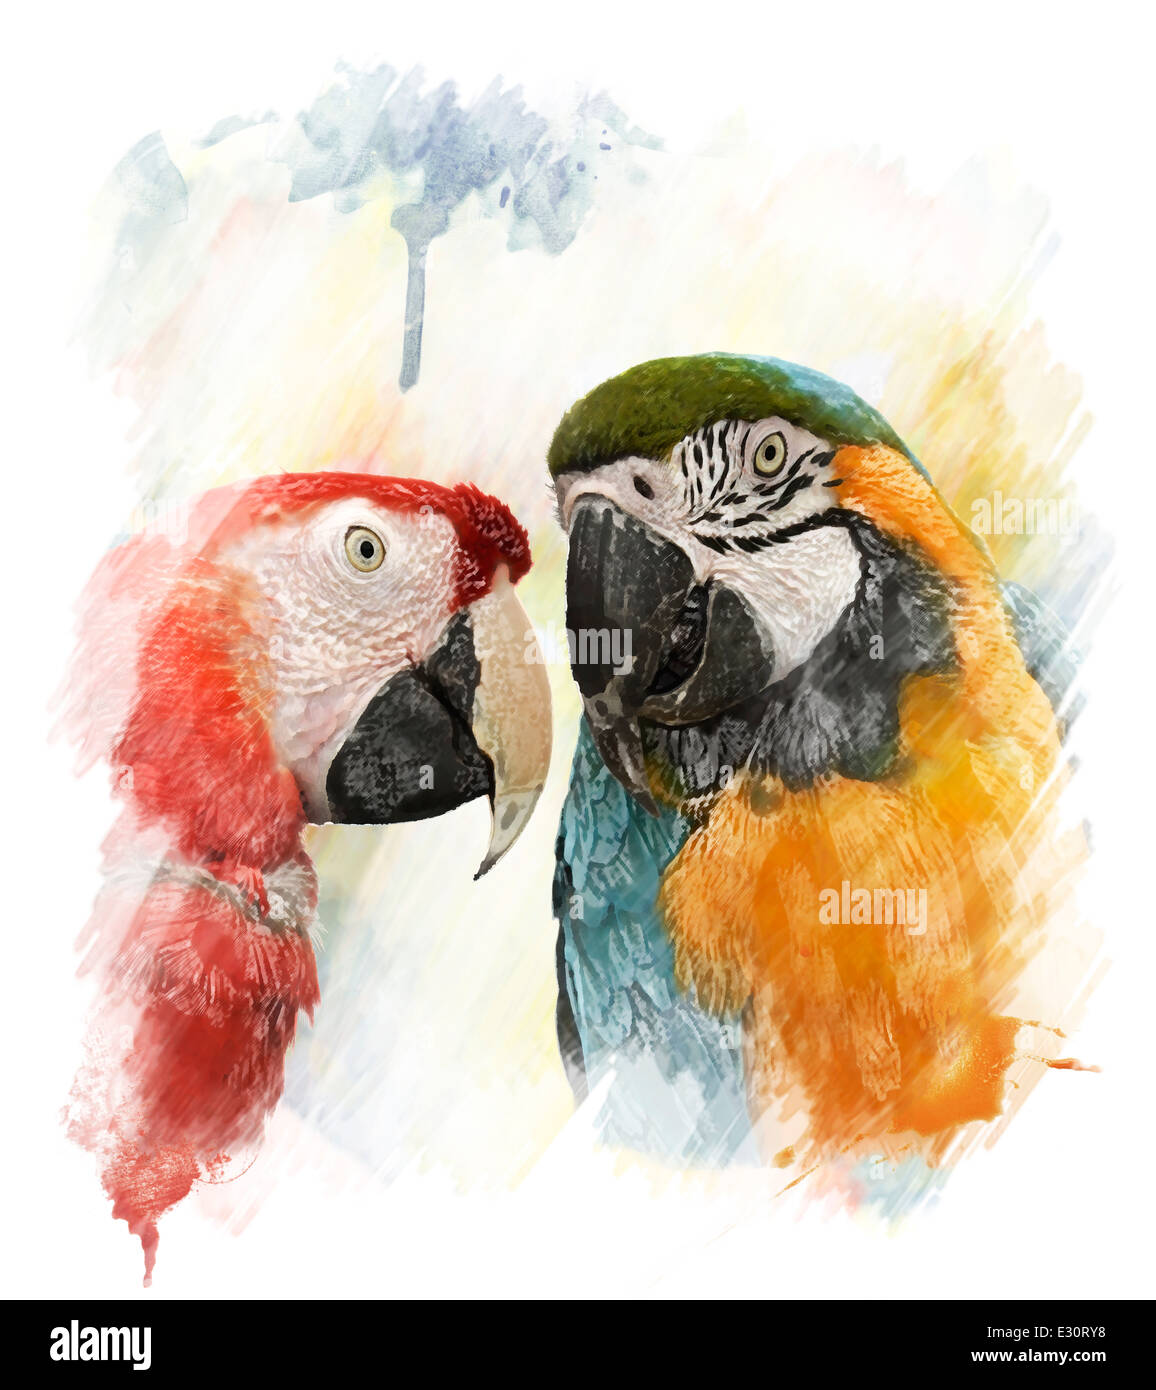 Watercolor Digital Painting Of Two Colorful Parrots - Stock Image